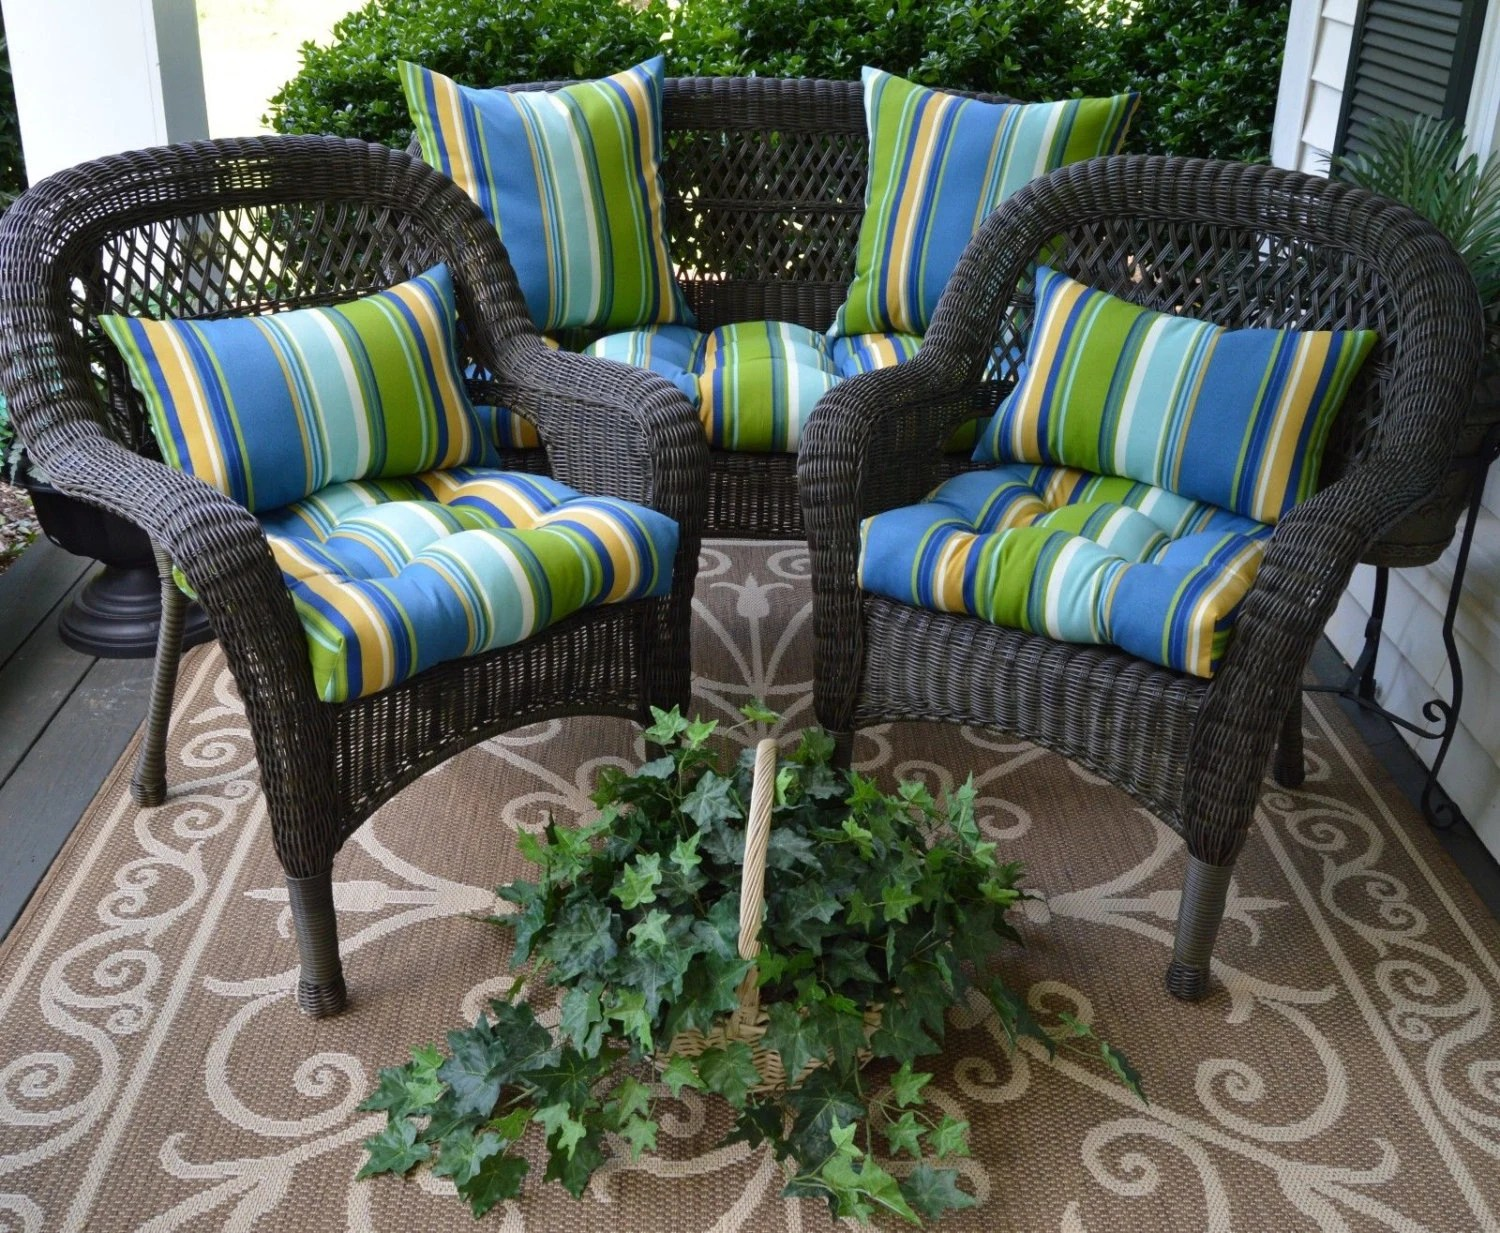 Wicker Cushion & Pillow 7 PC Set Blue Green And Yellow